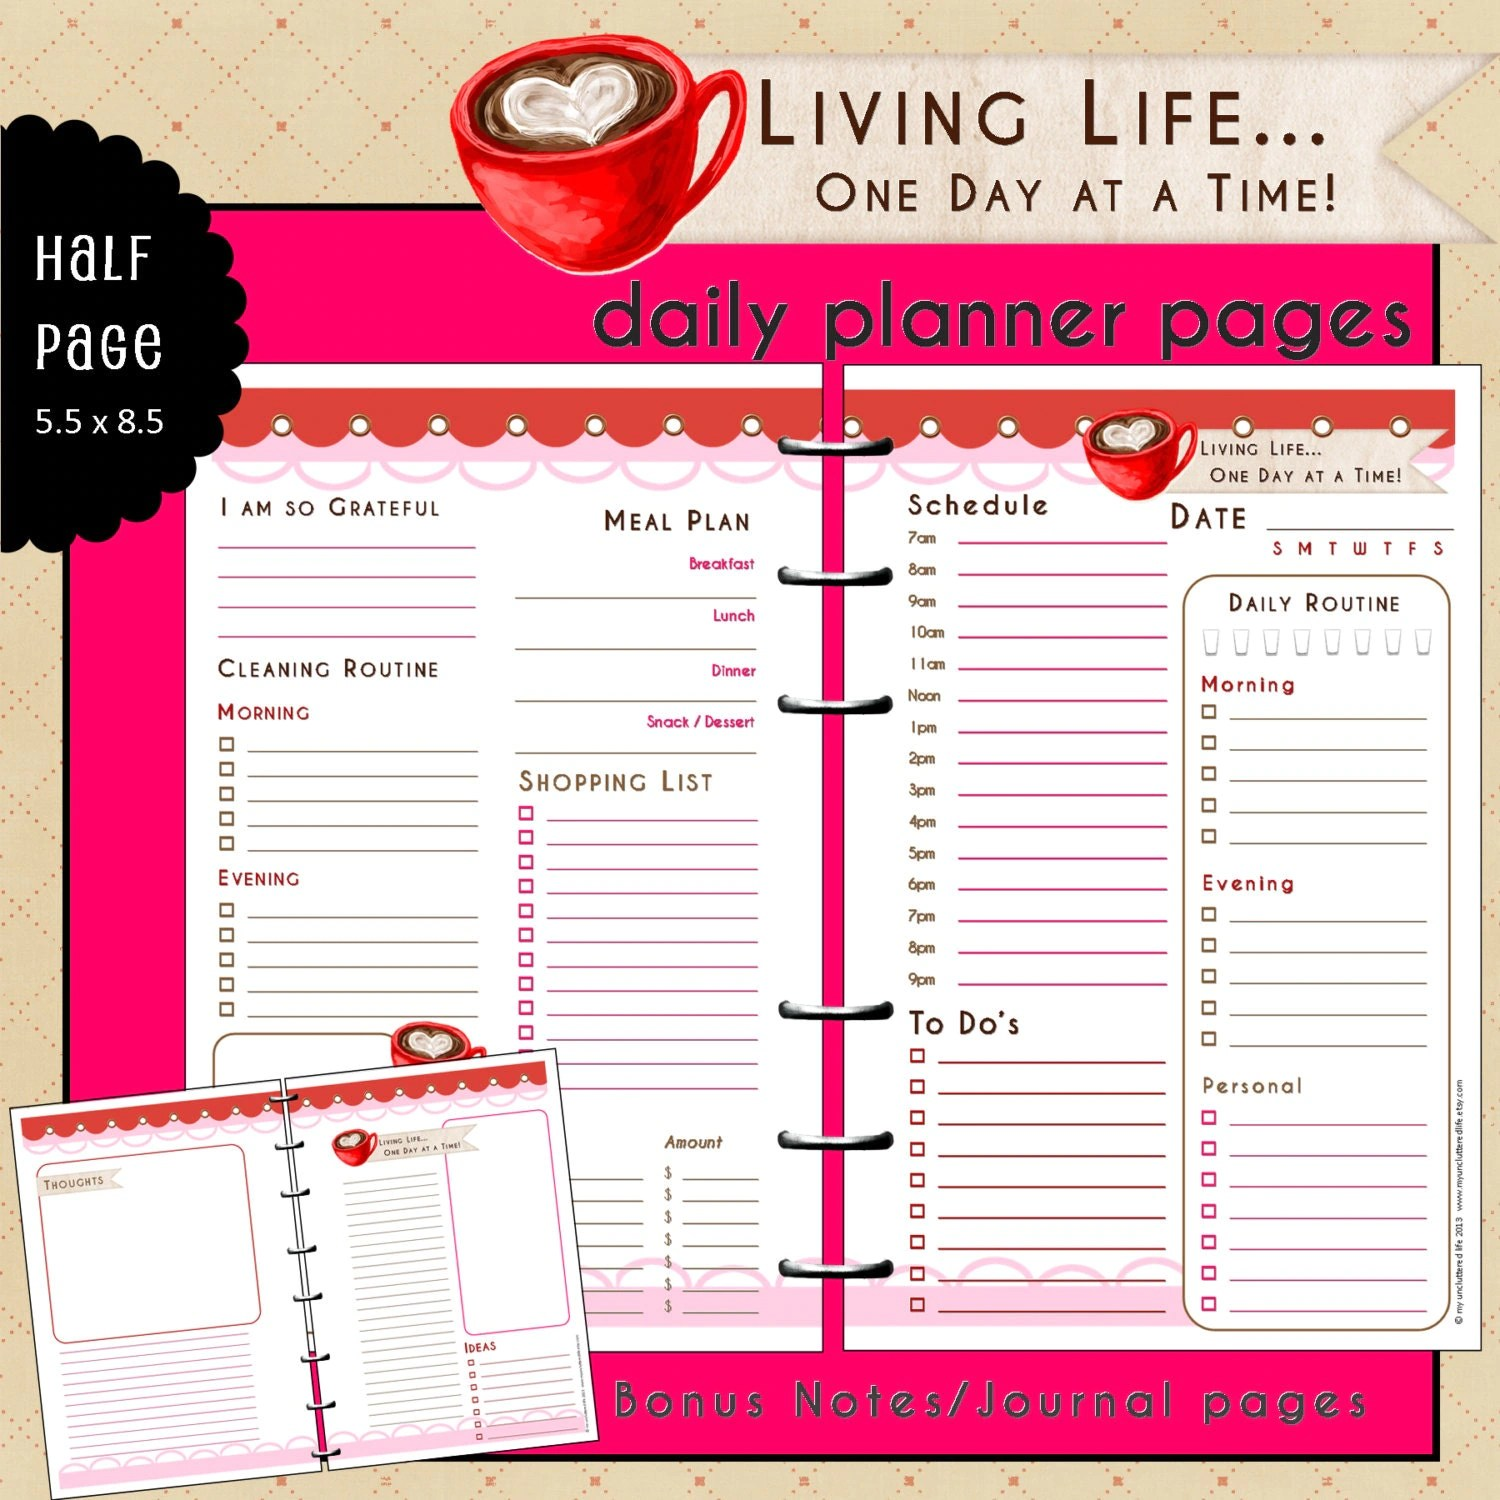 Daily Planner Printable Half Page Undated By Myunclutteredlife